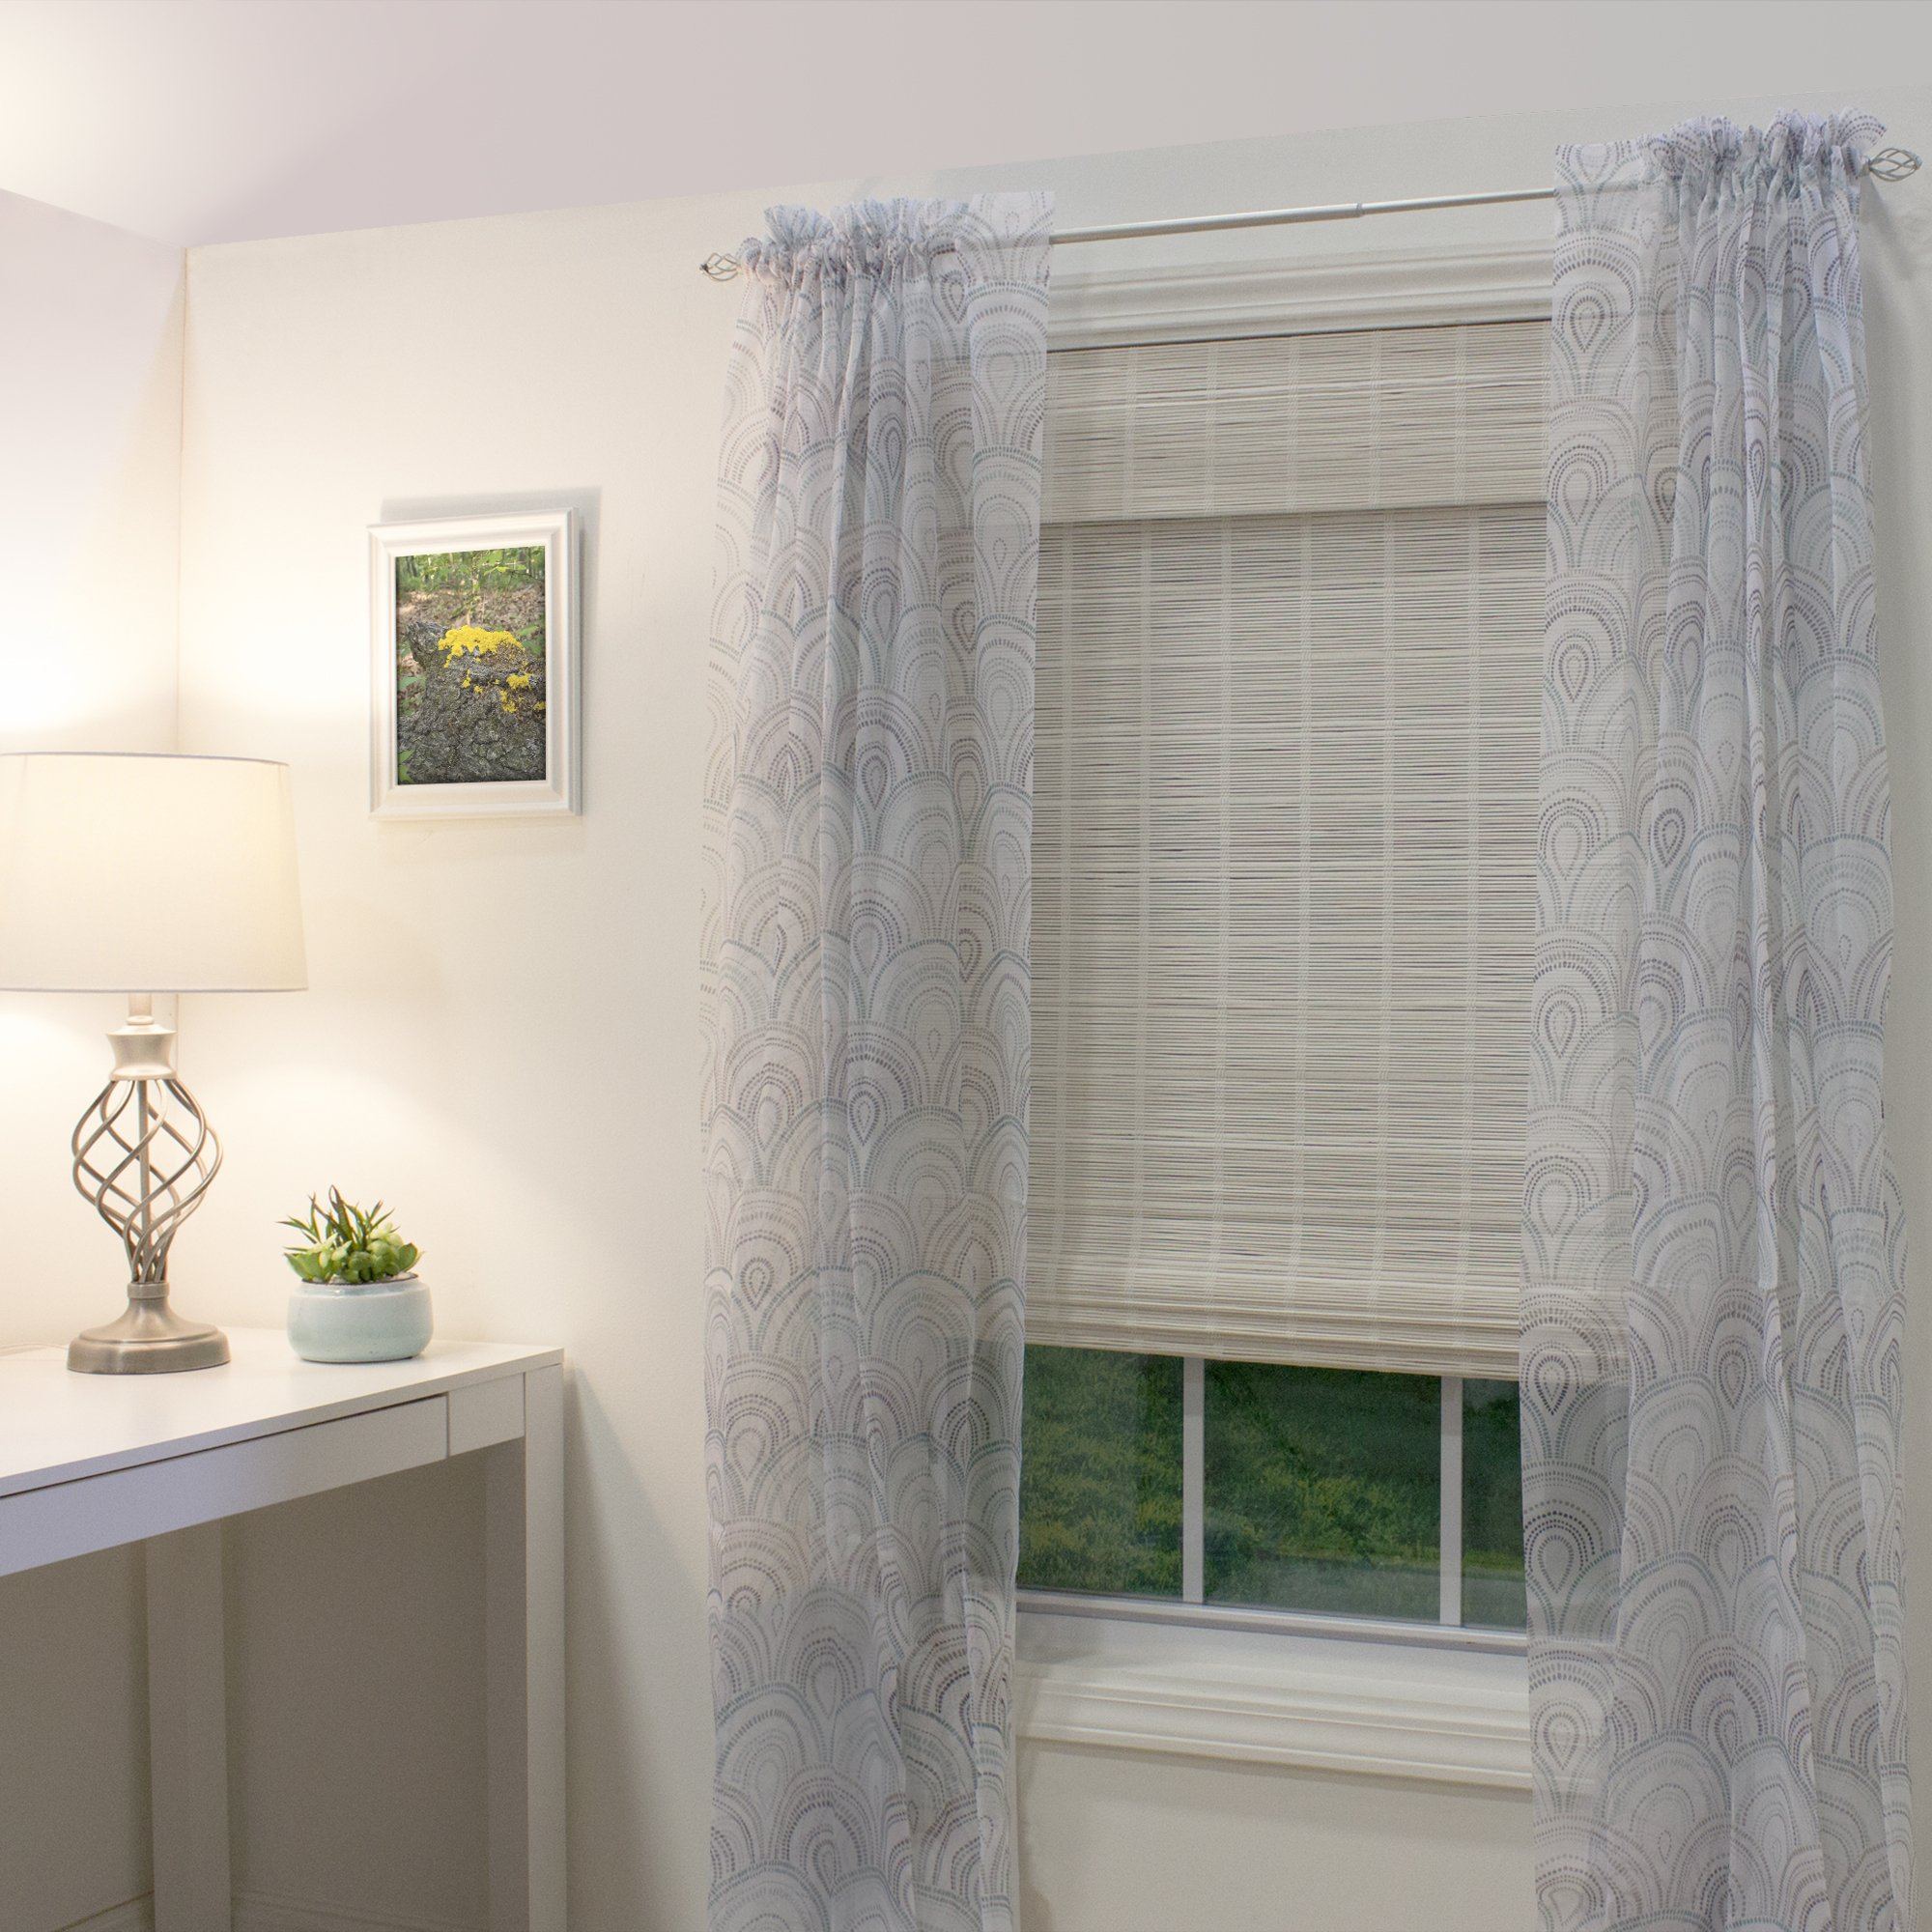 Lewis Hyman Cordless Bayshore Matchstick Bamboo Roman Shade-35 in. W x 64 in. L Bamboo Blinds, Roman, Cordless Shades, 35'' W x 64'' L, White by Lewis Hyman (Image #4)